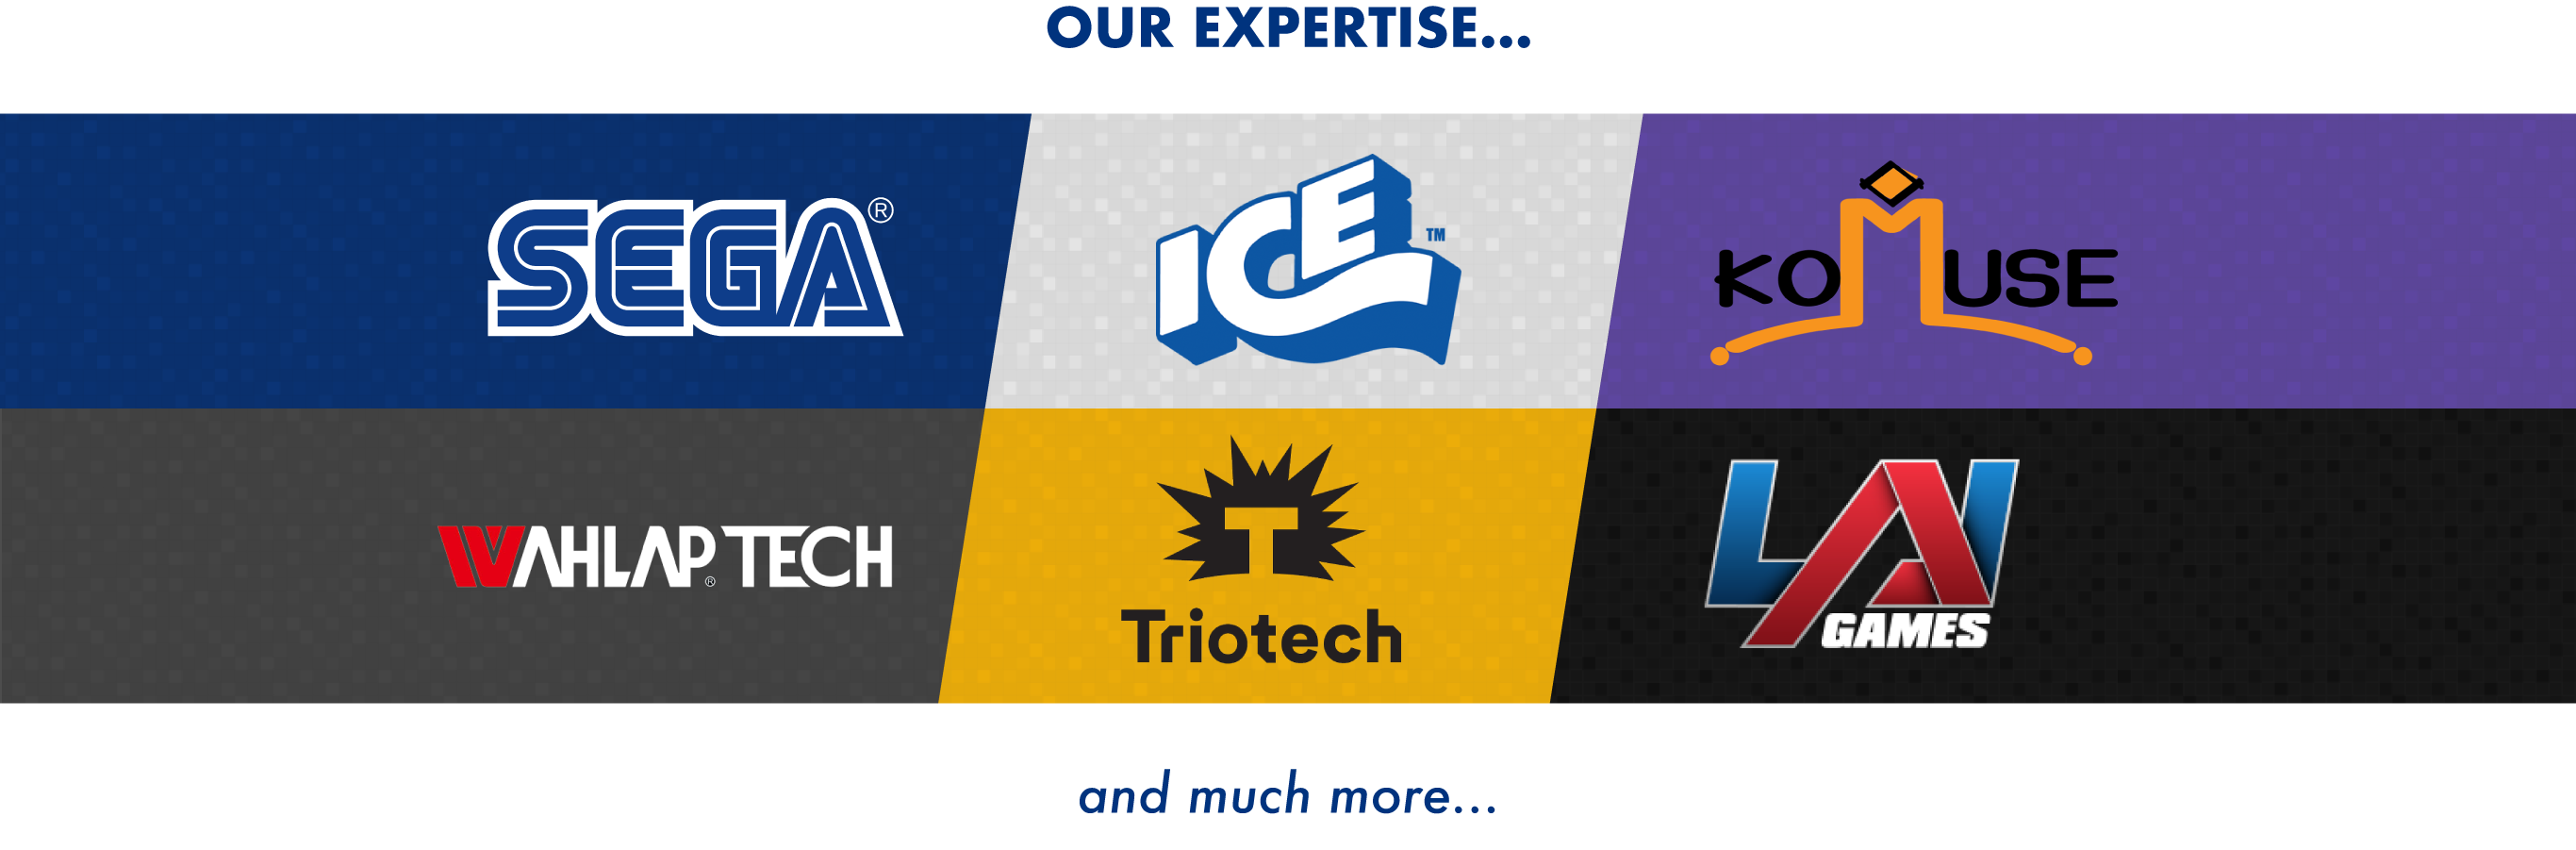 Our technical expertise includes Sega, Ice, Komuse, Wahlap Tech, Triotech and LAI games